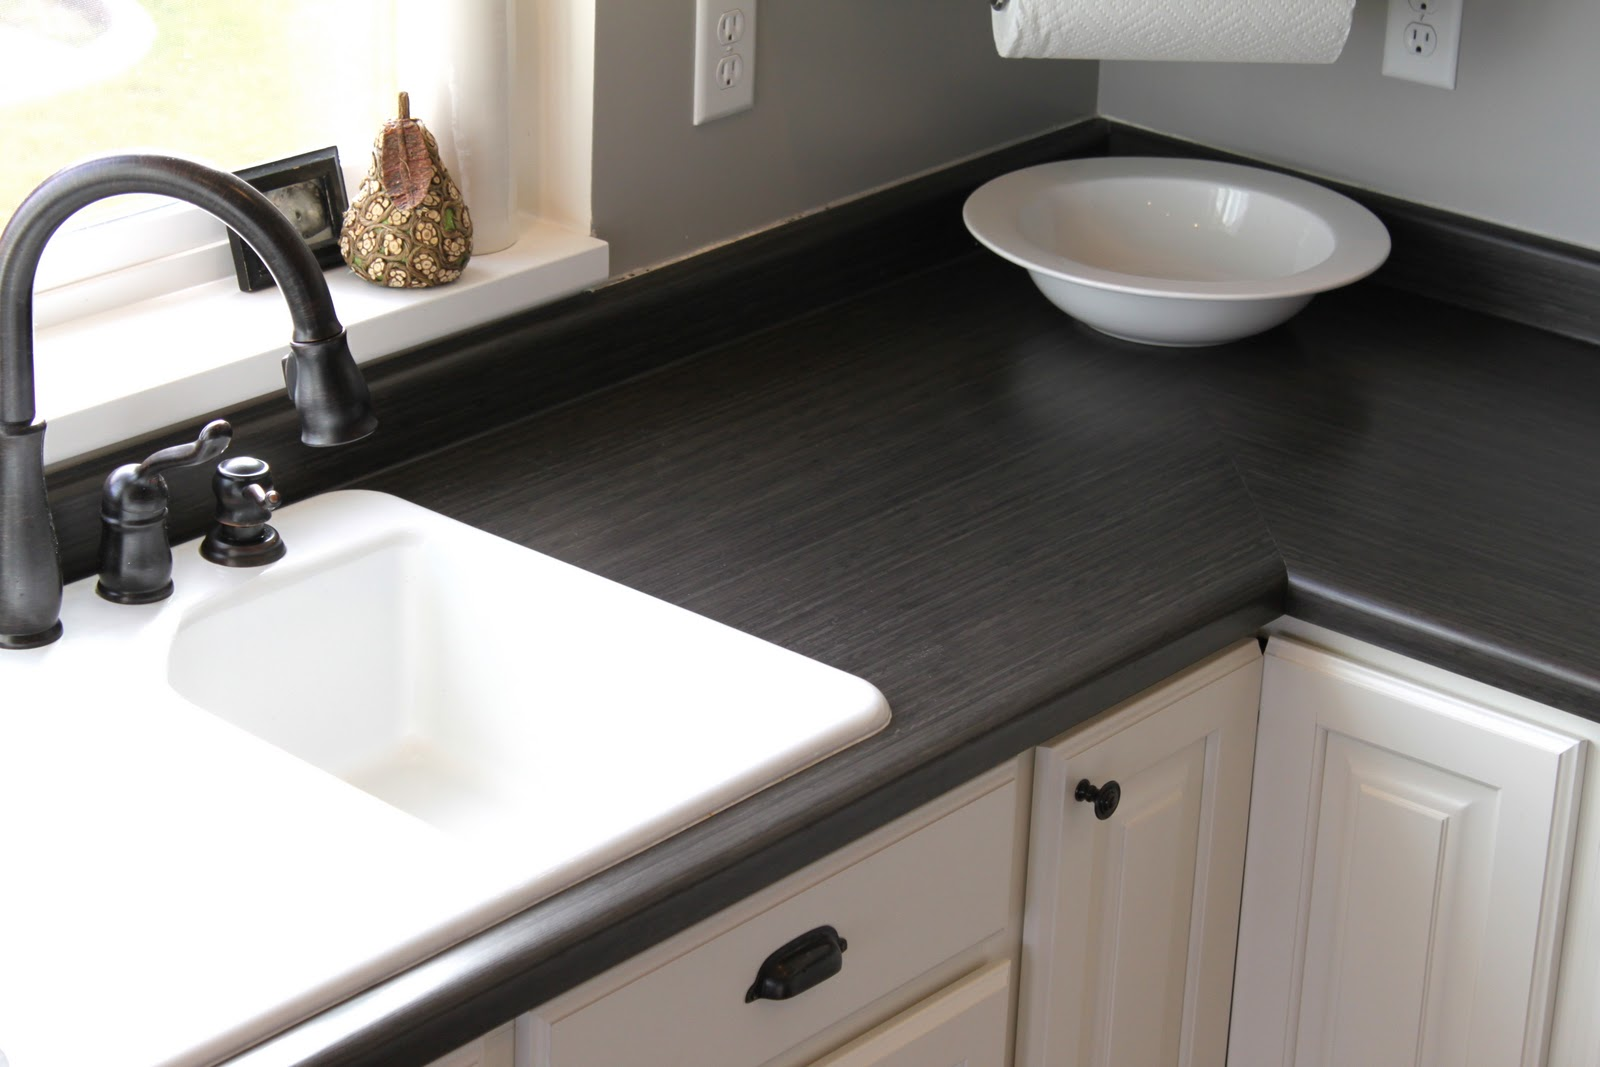 Bathroom Countertop Surface Options : We had the builders build a drywall soffit above all the cabinetry, we ...